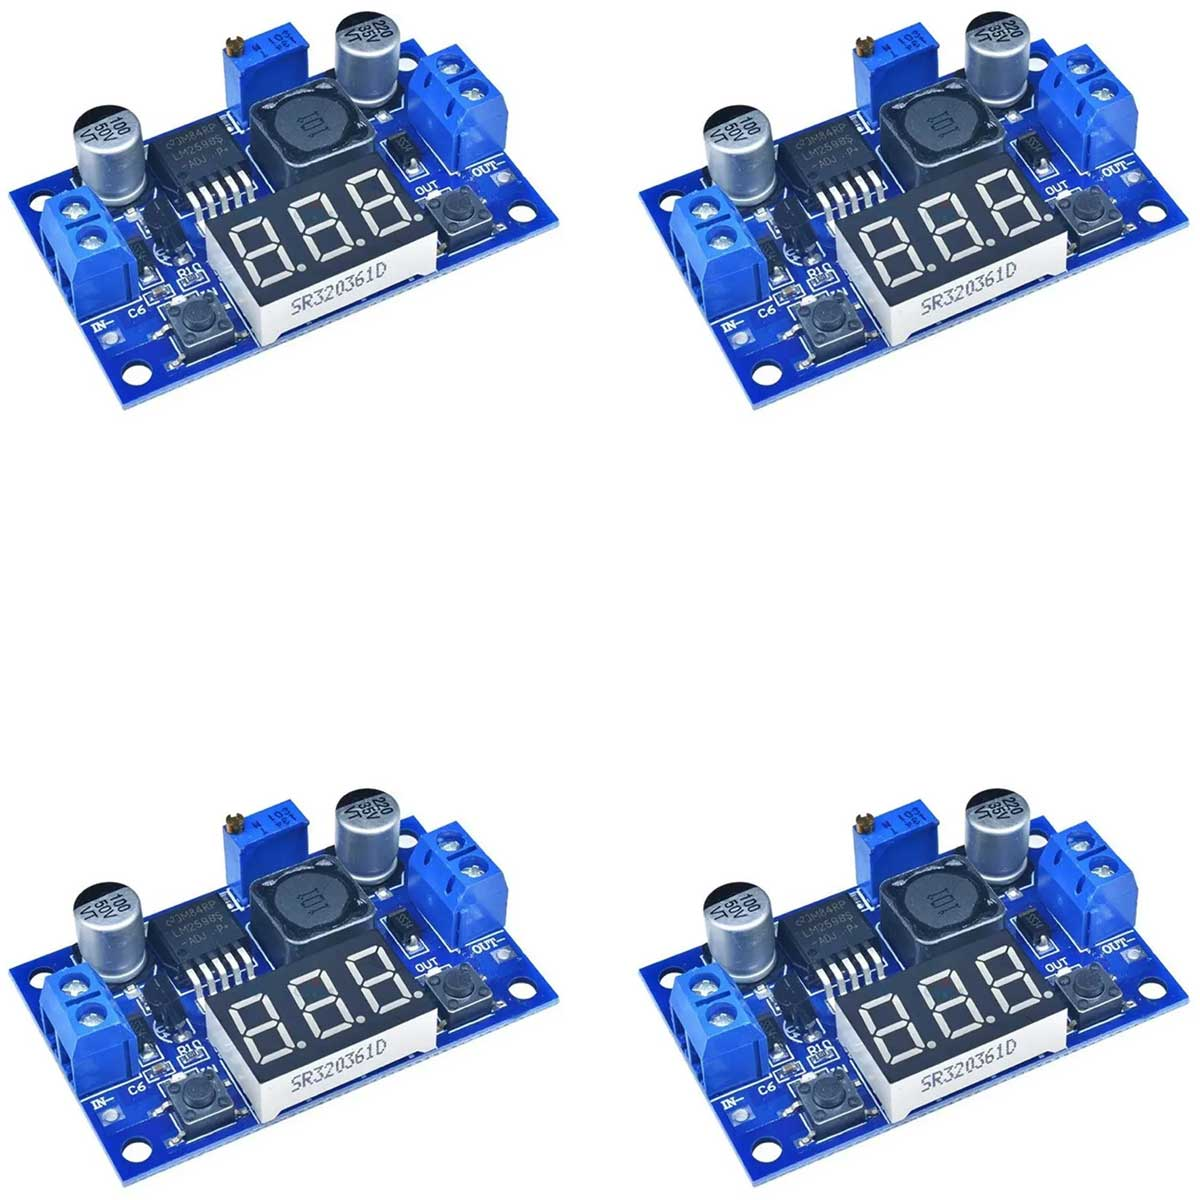 4x Regulador de Tensão Step Down Ajustável LM2596 DC-DC com Display